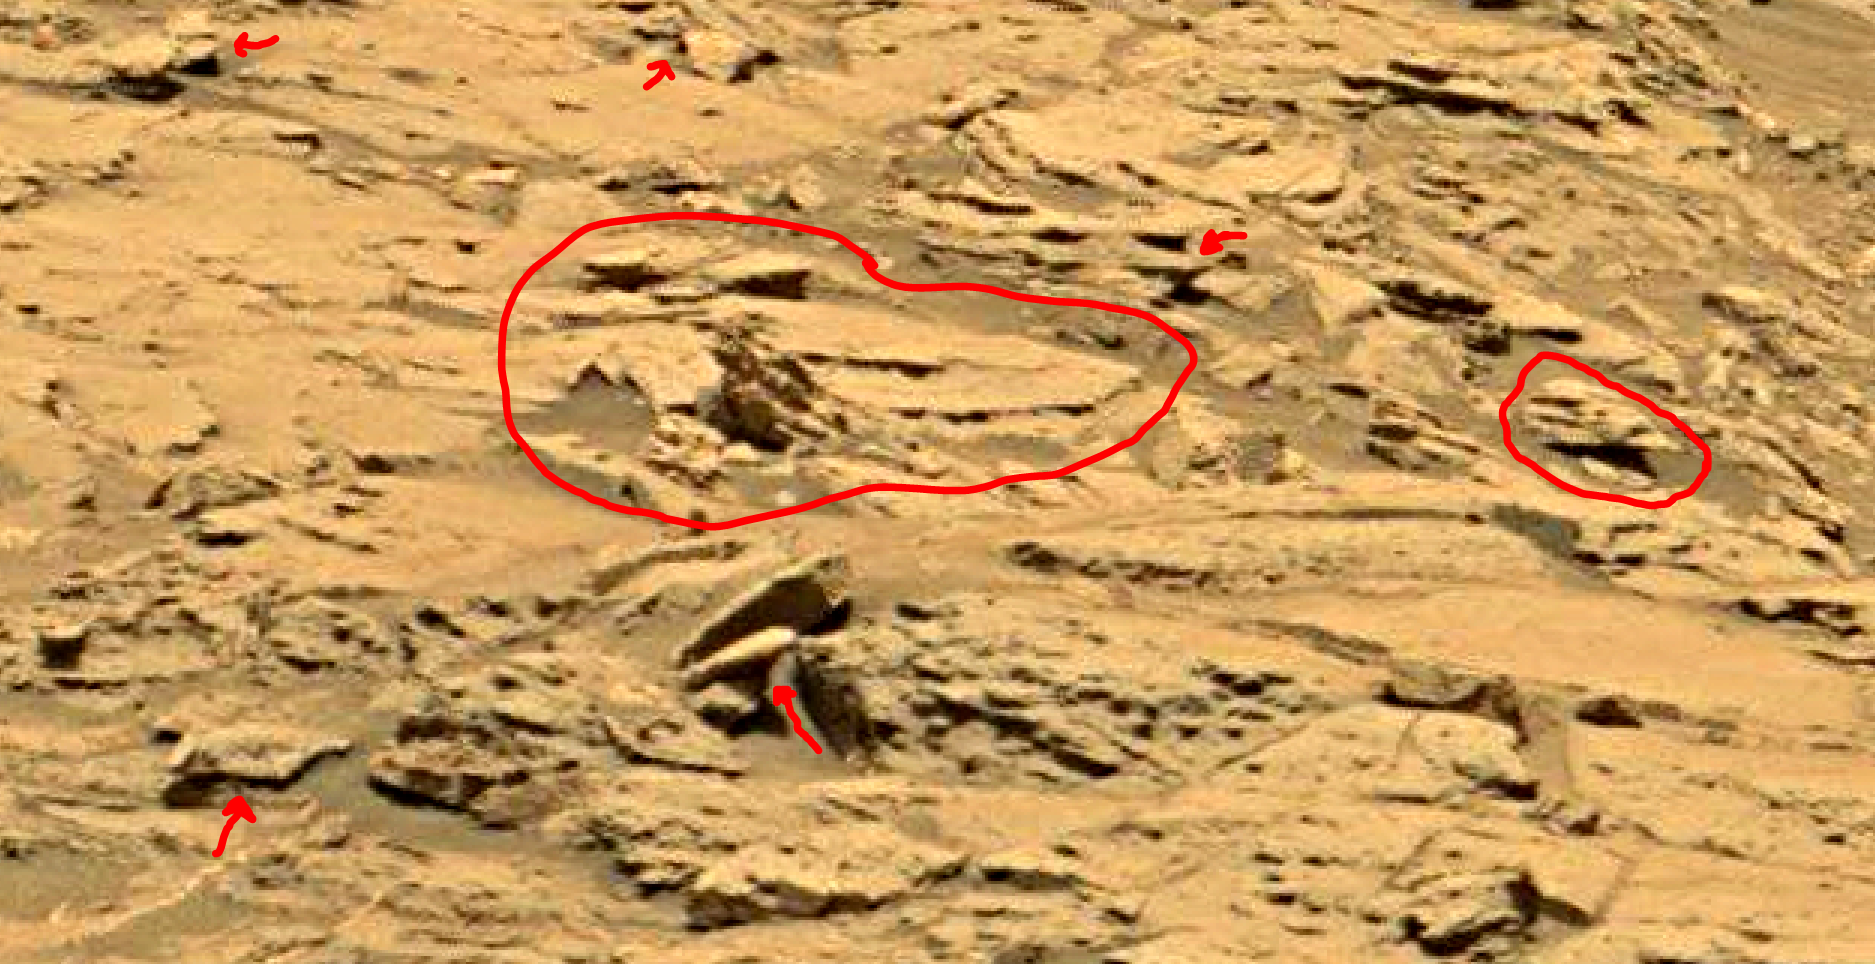 mars sol 1353 anomaly-artifacts 22a was life on mars